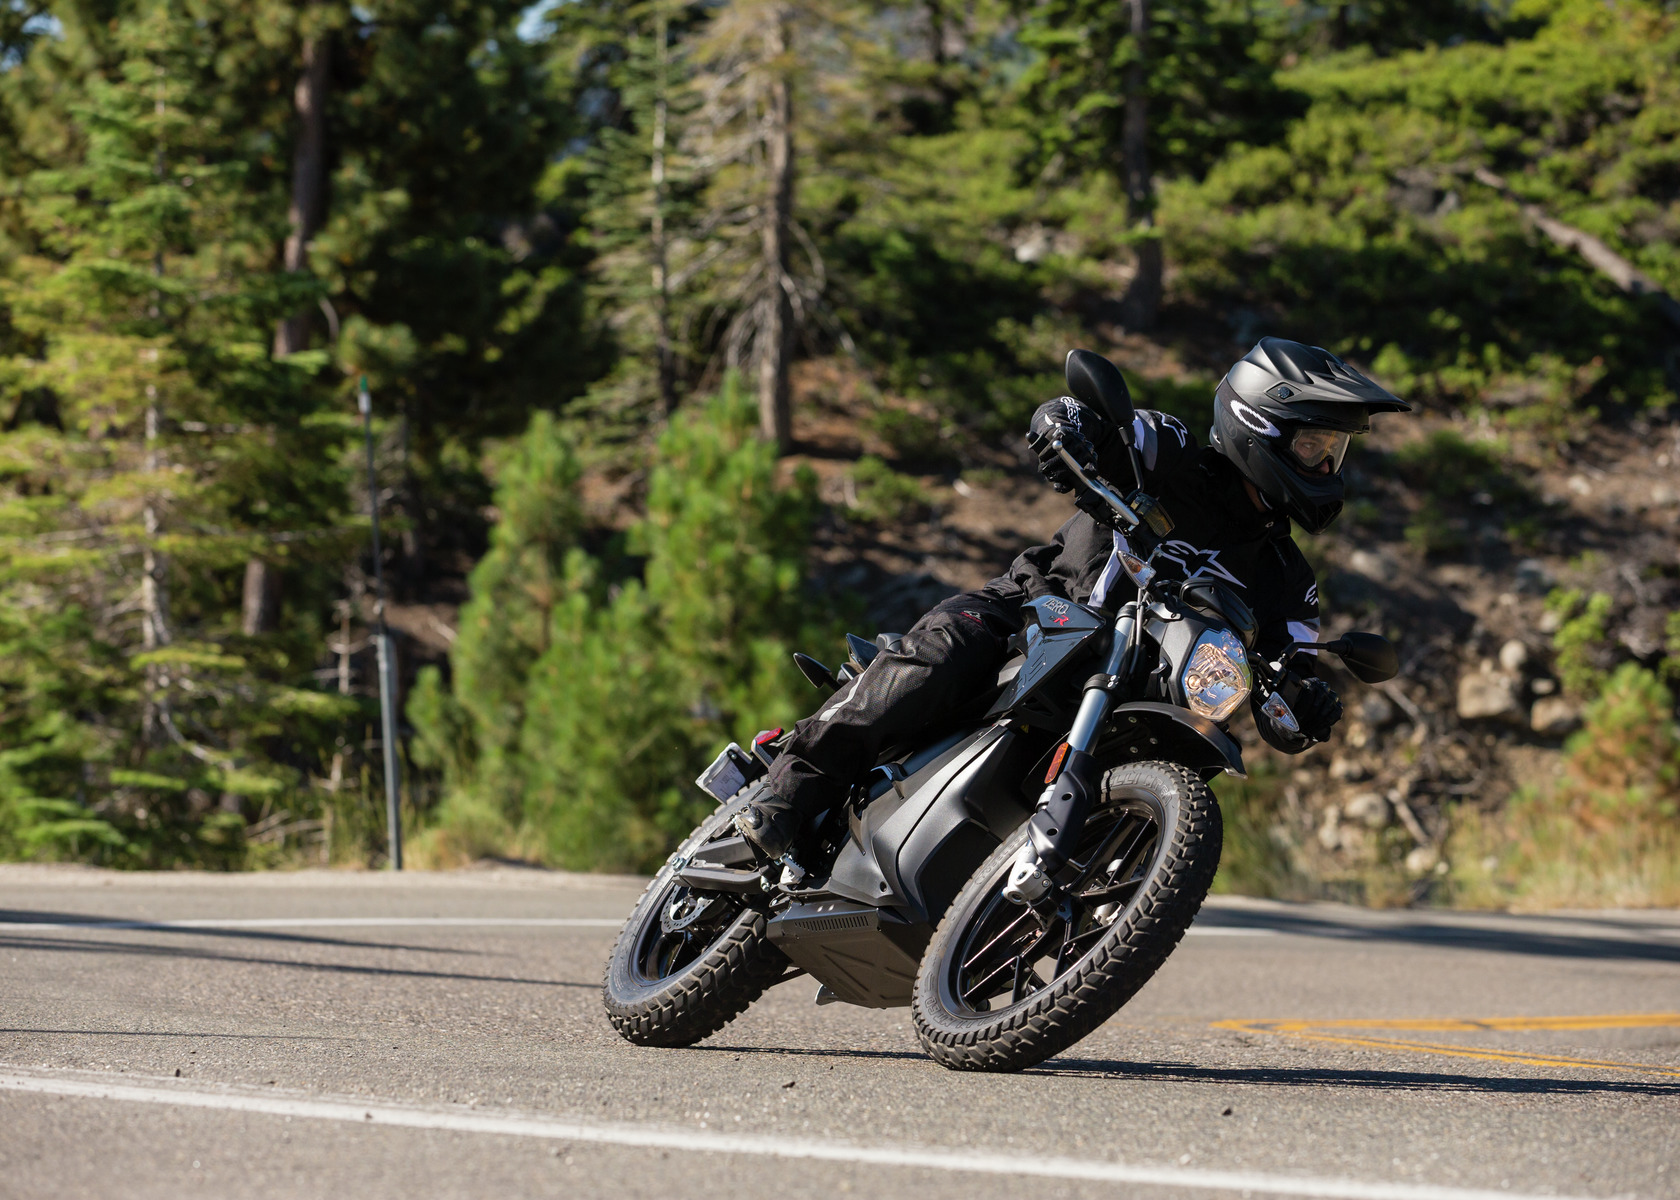 2016 Zero DSR Electric Motorcycle: